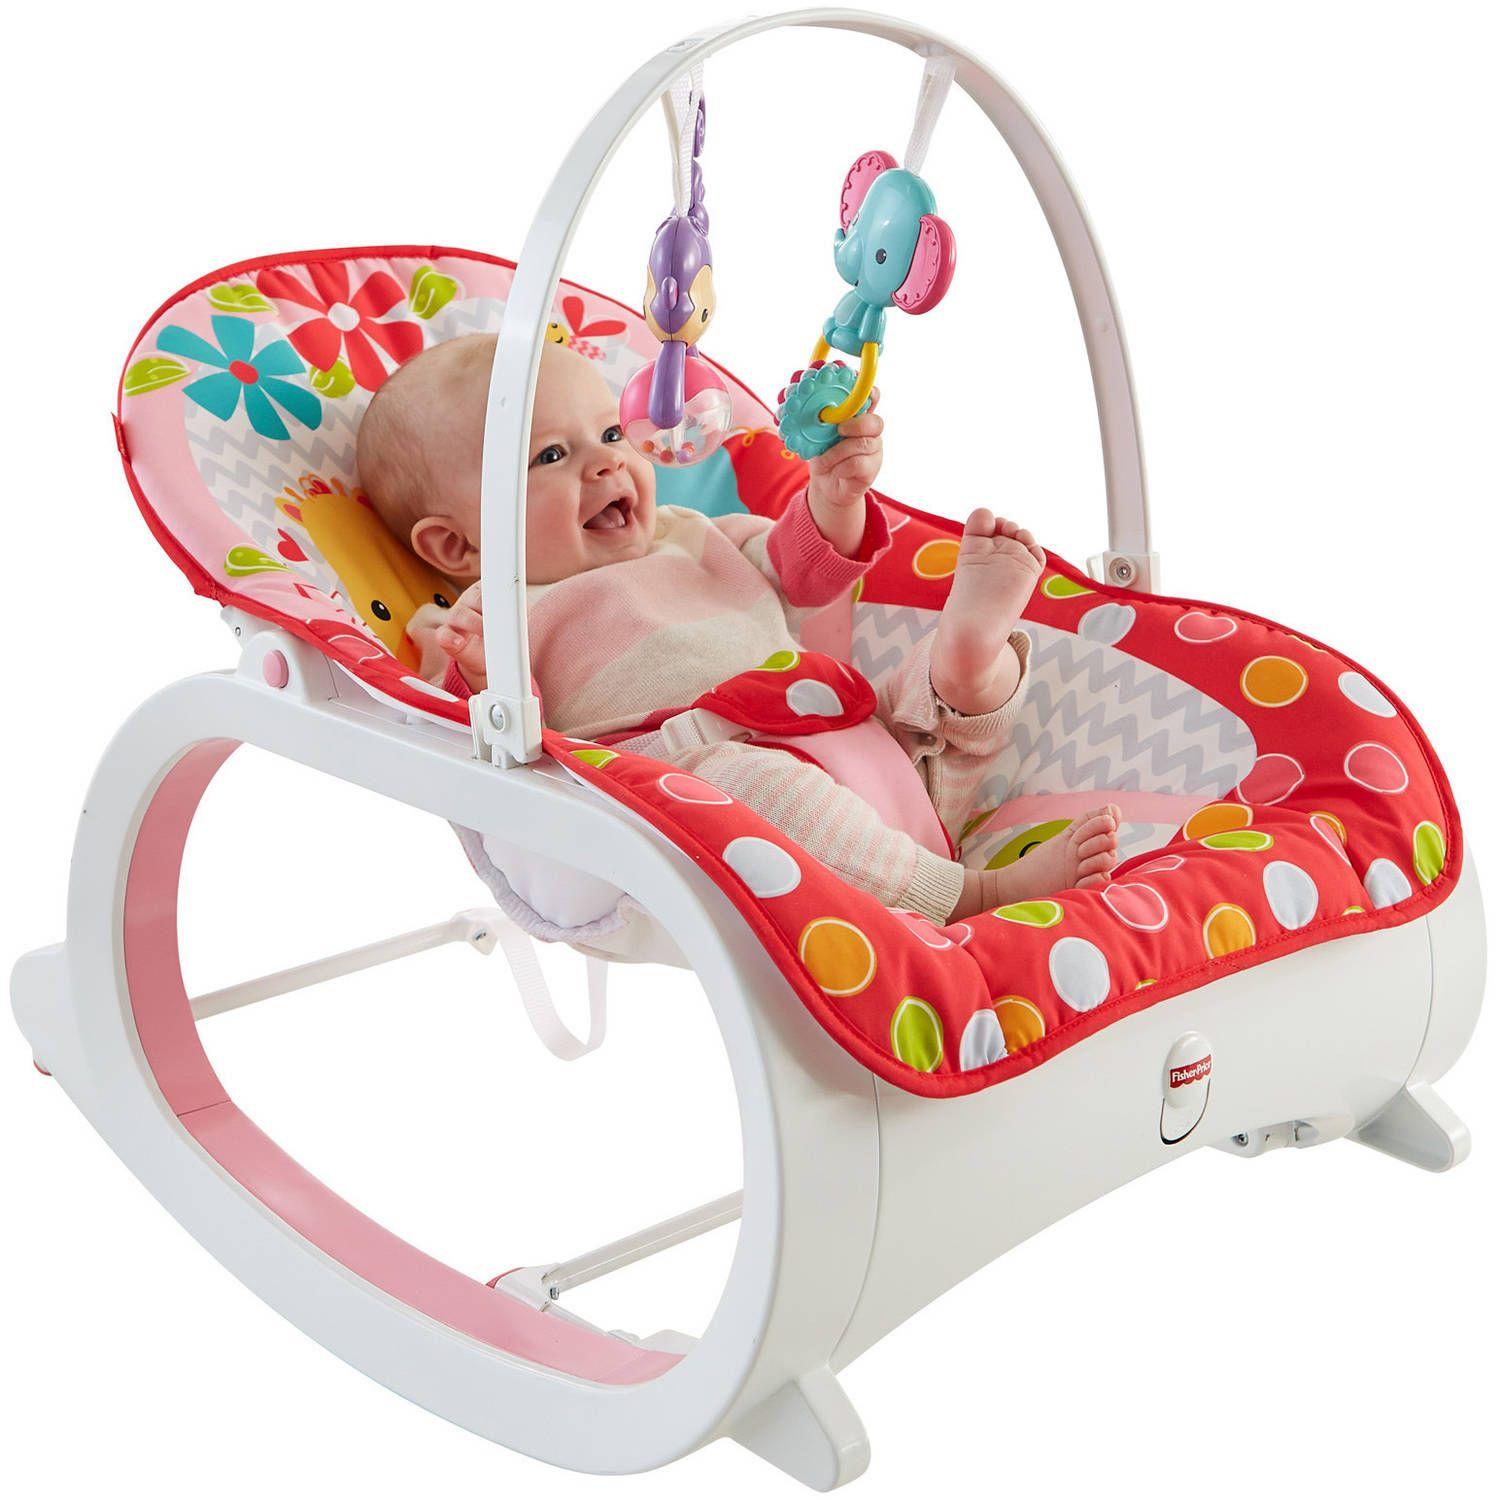 Image result for baby rockers Baby rockers Pinterest